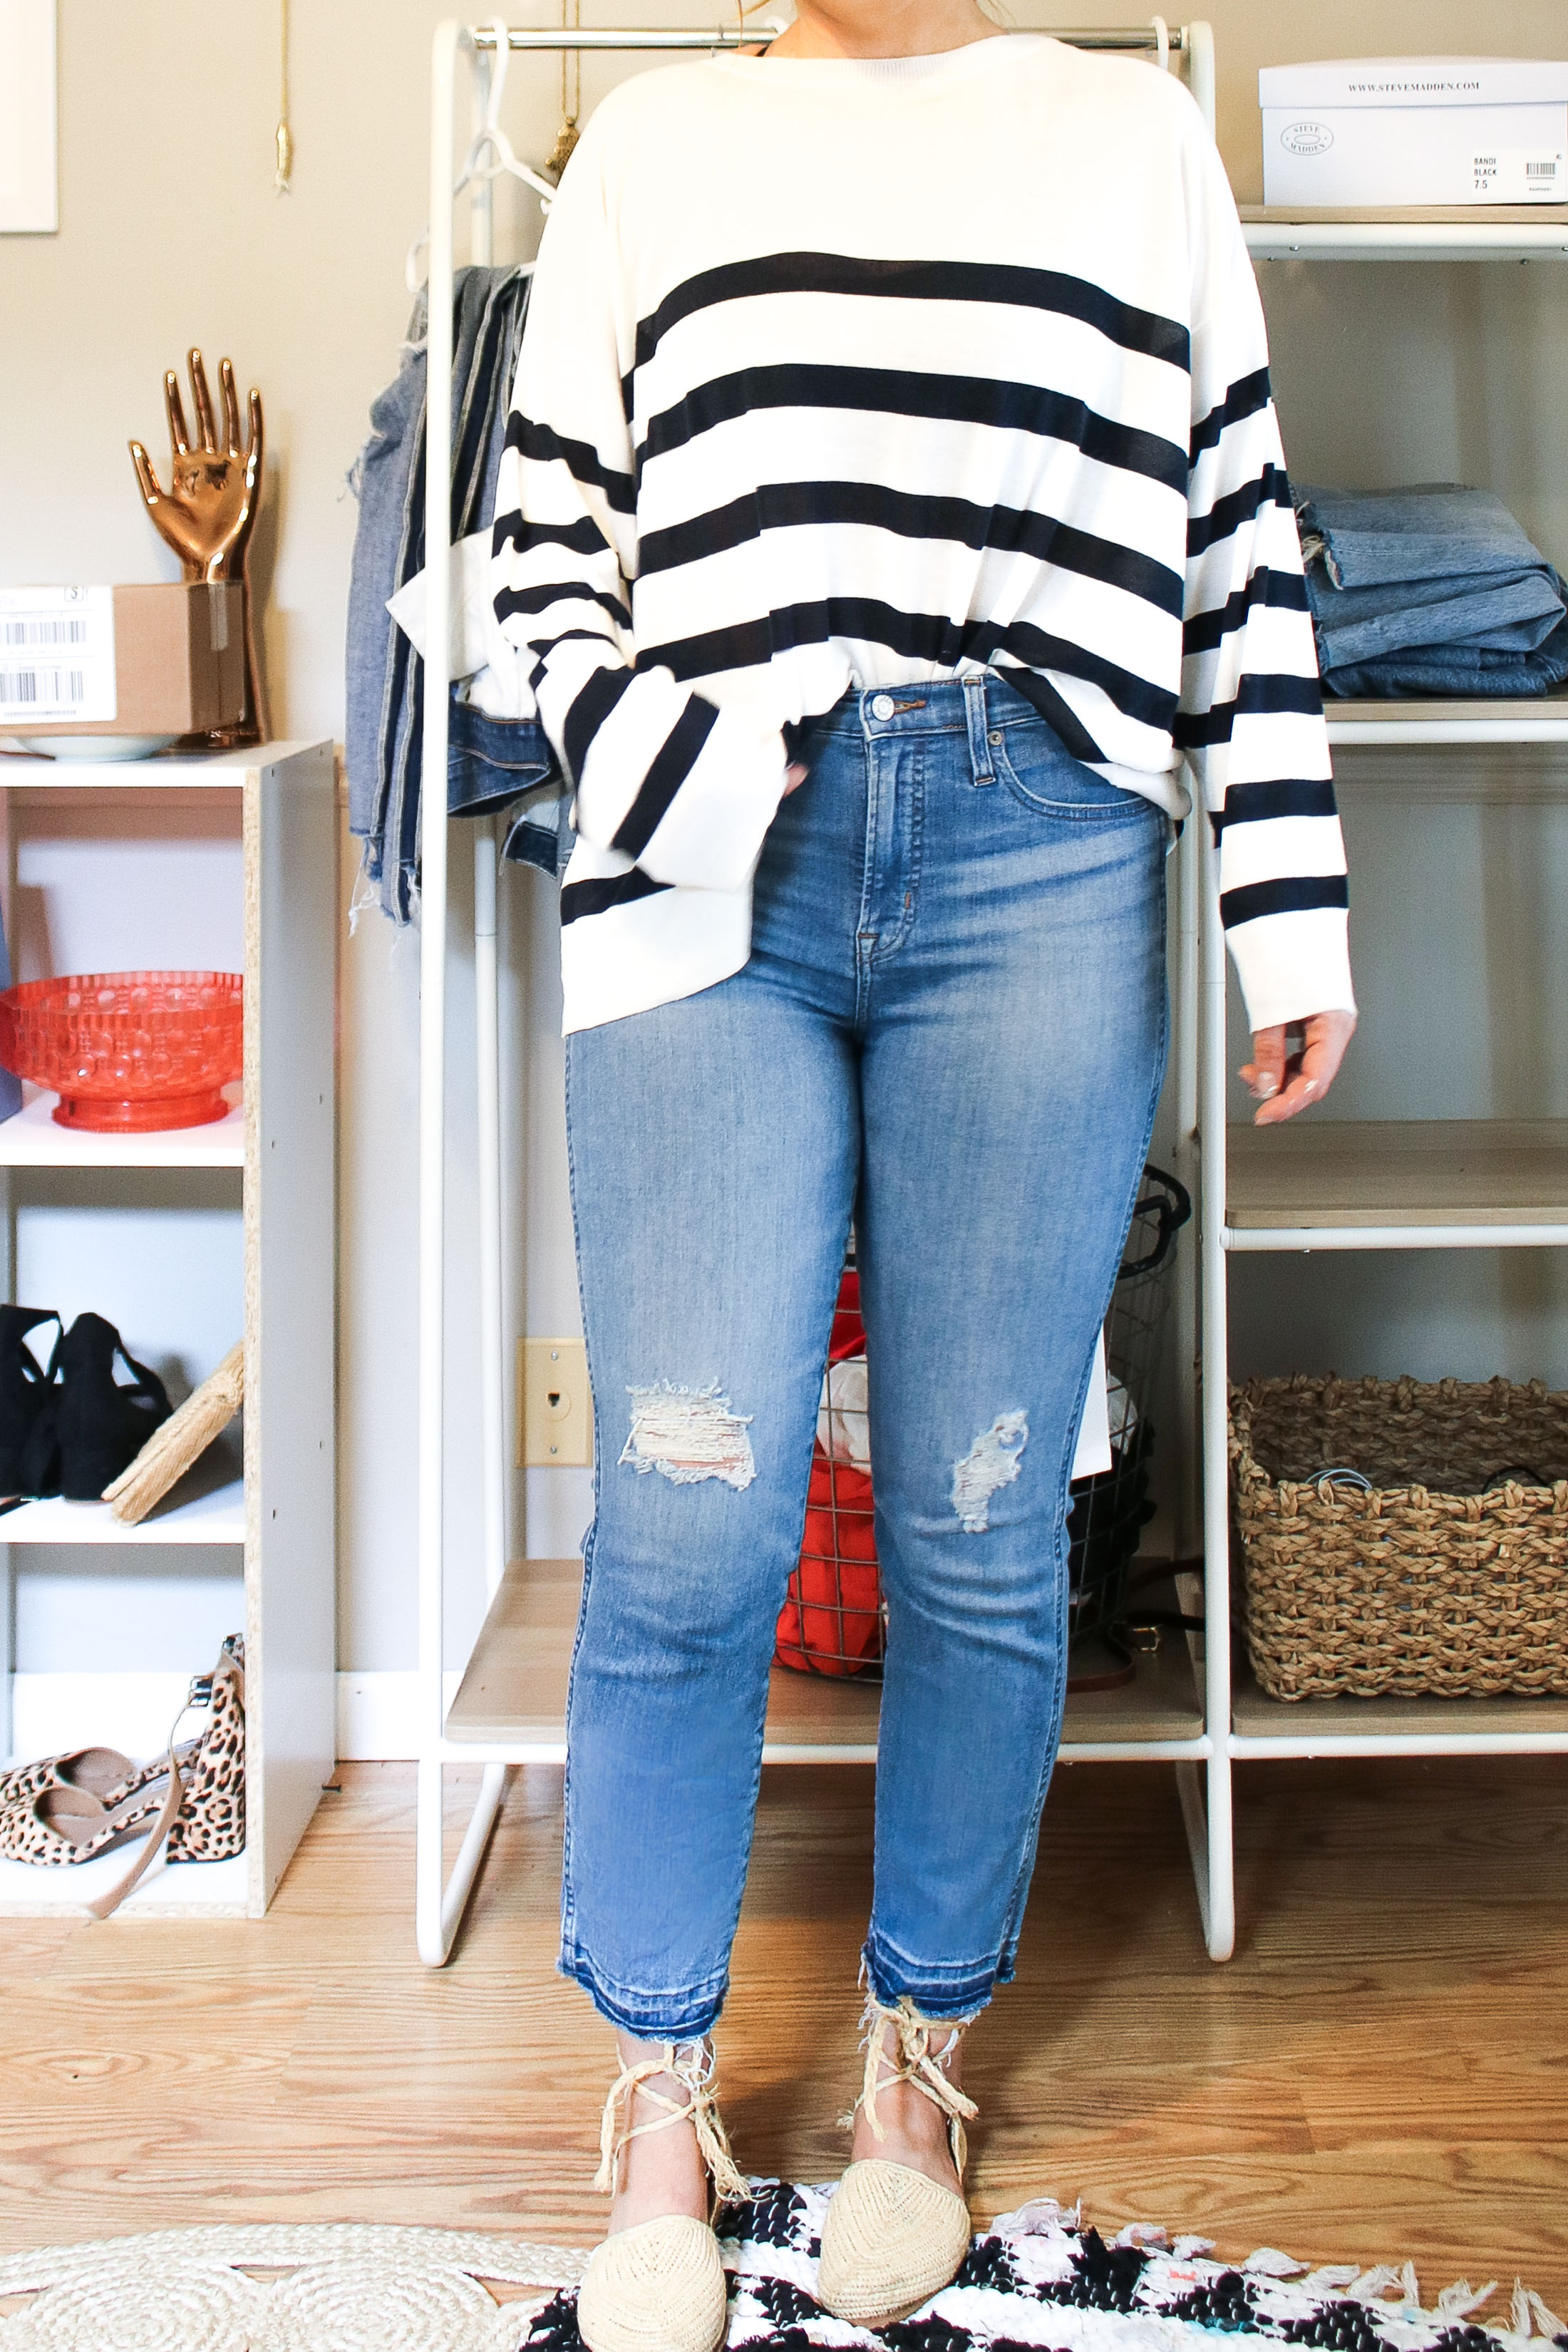 Finding denim we love = SO. DANG. HARD. The good news is that J.Crew is nailing jeans right now. We're trying 5 women's pairs. #DressingRoomSelfies.